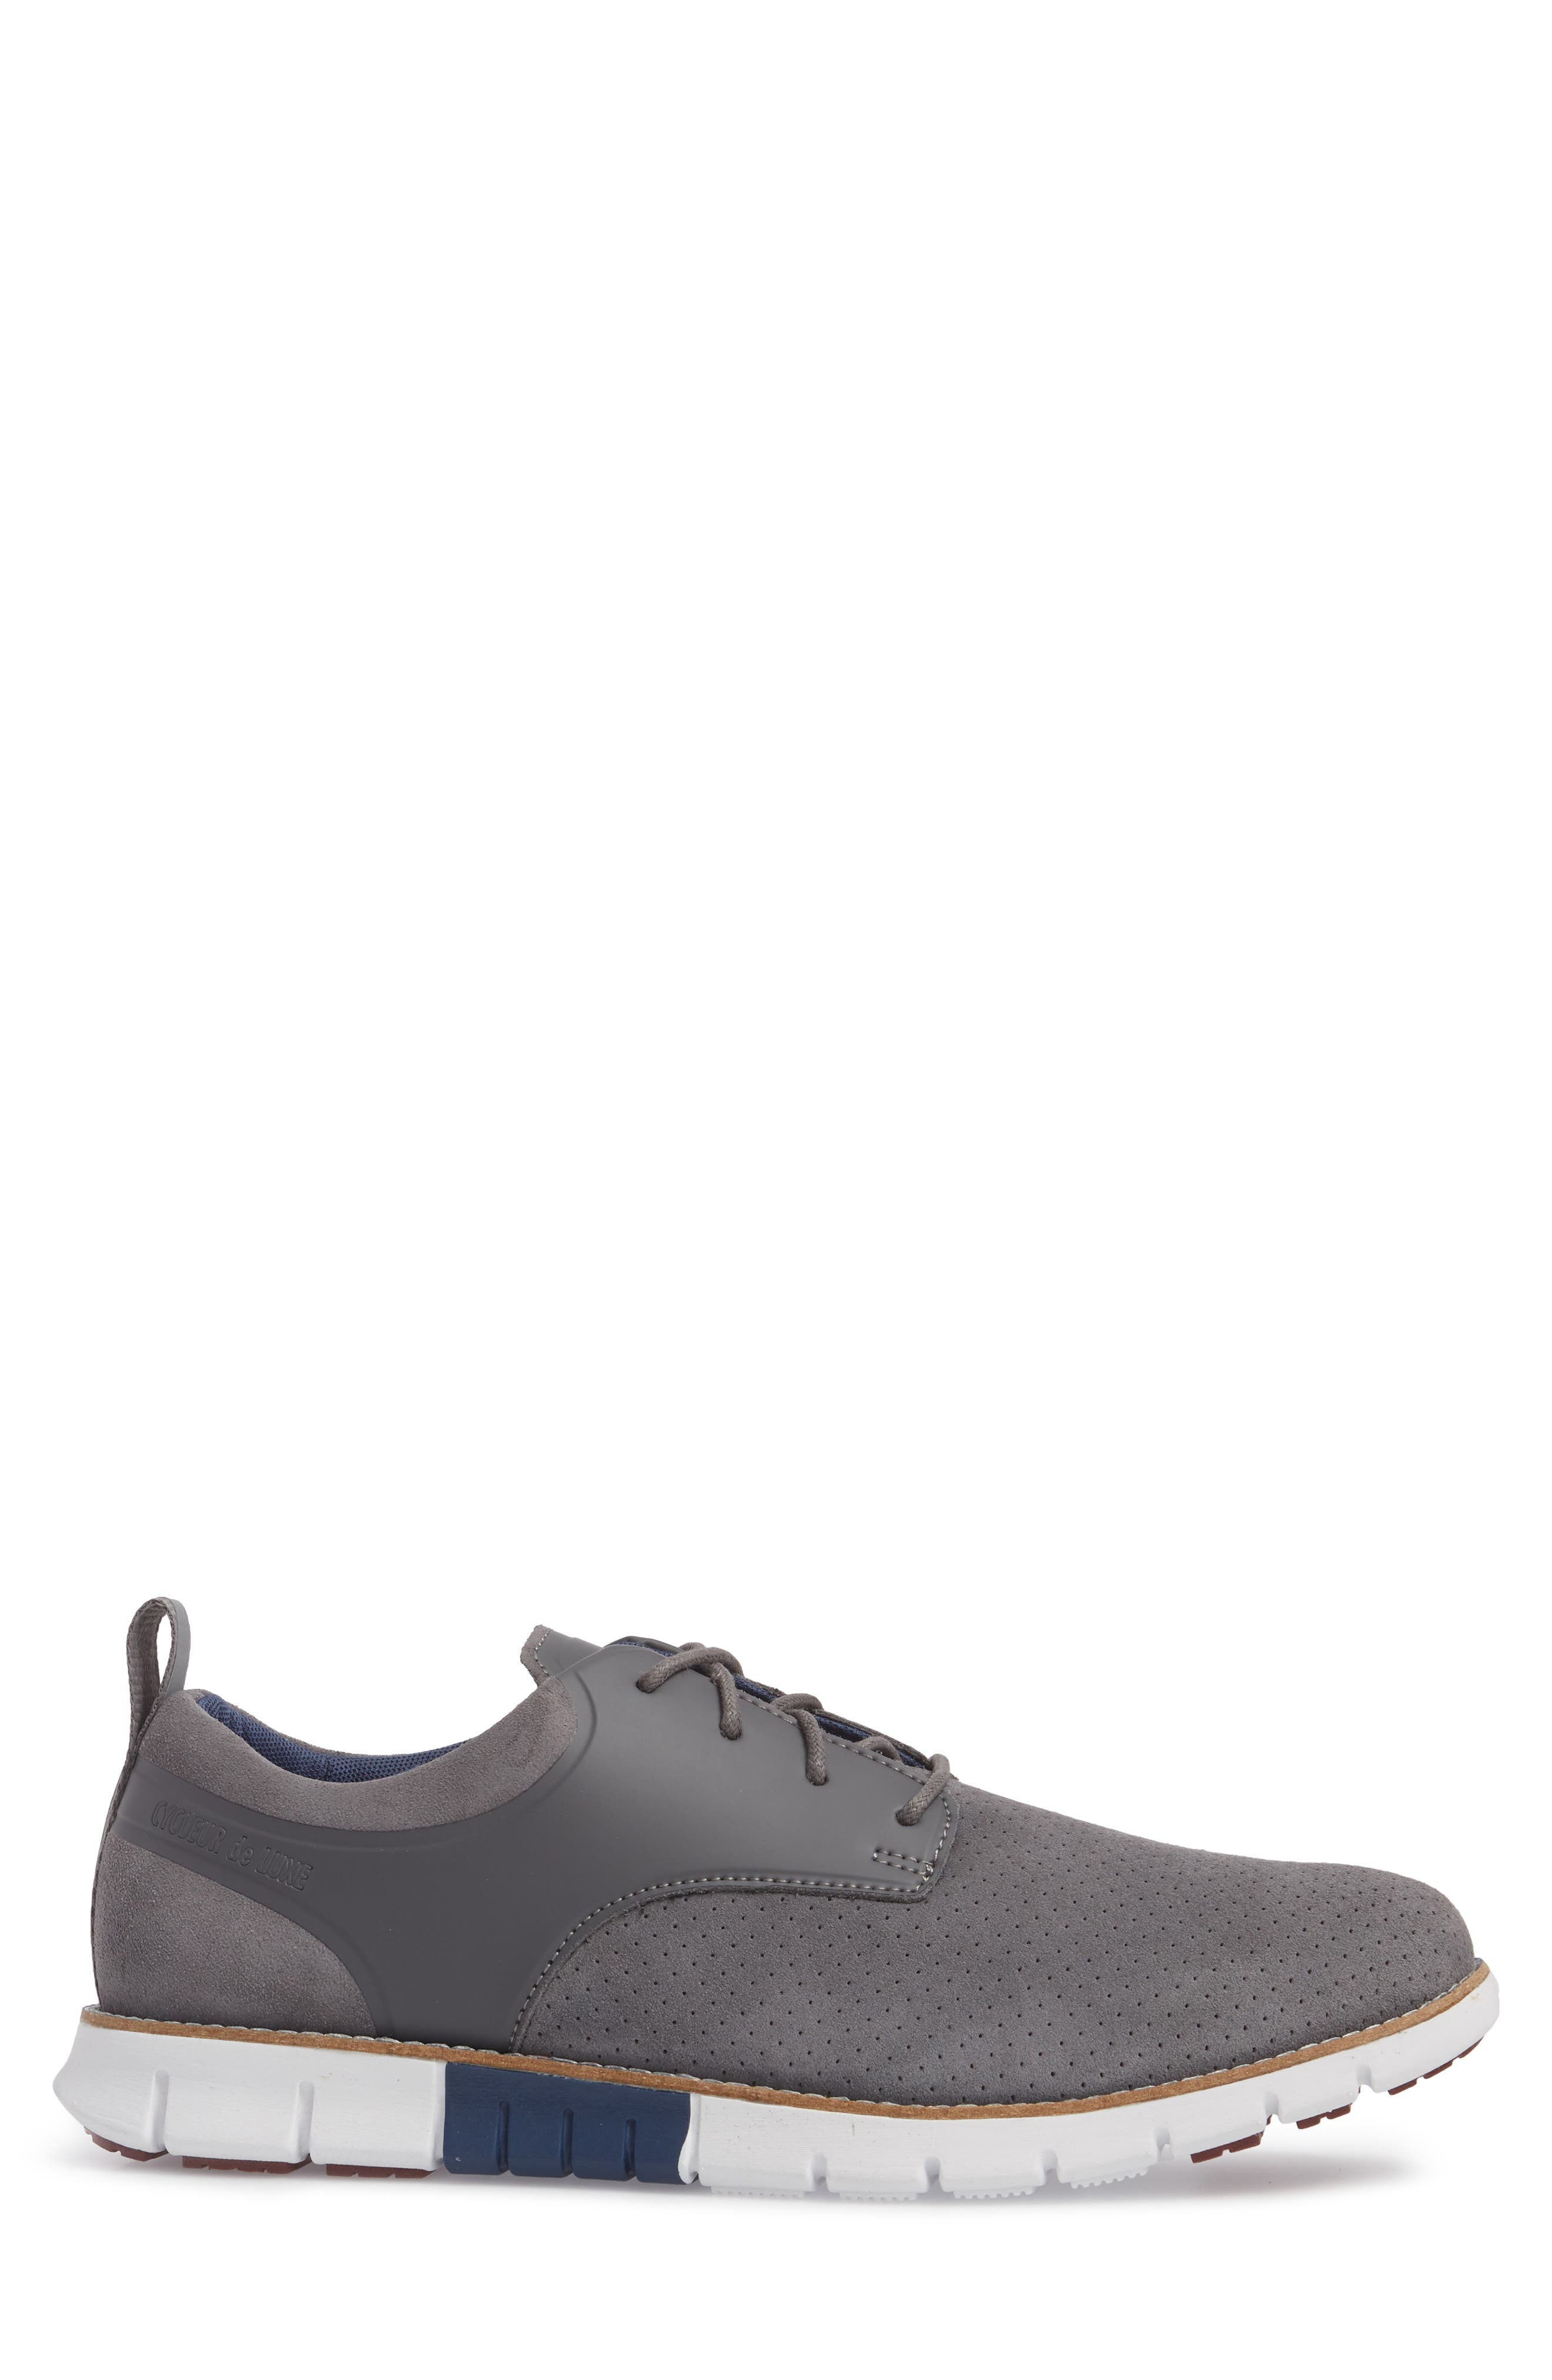 Ridley Perforated Low Top Sneaker,                             Alternate thumbnail 3, color,                             020